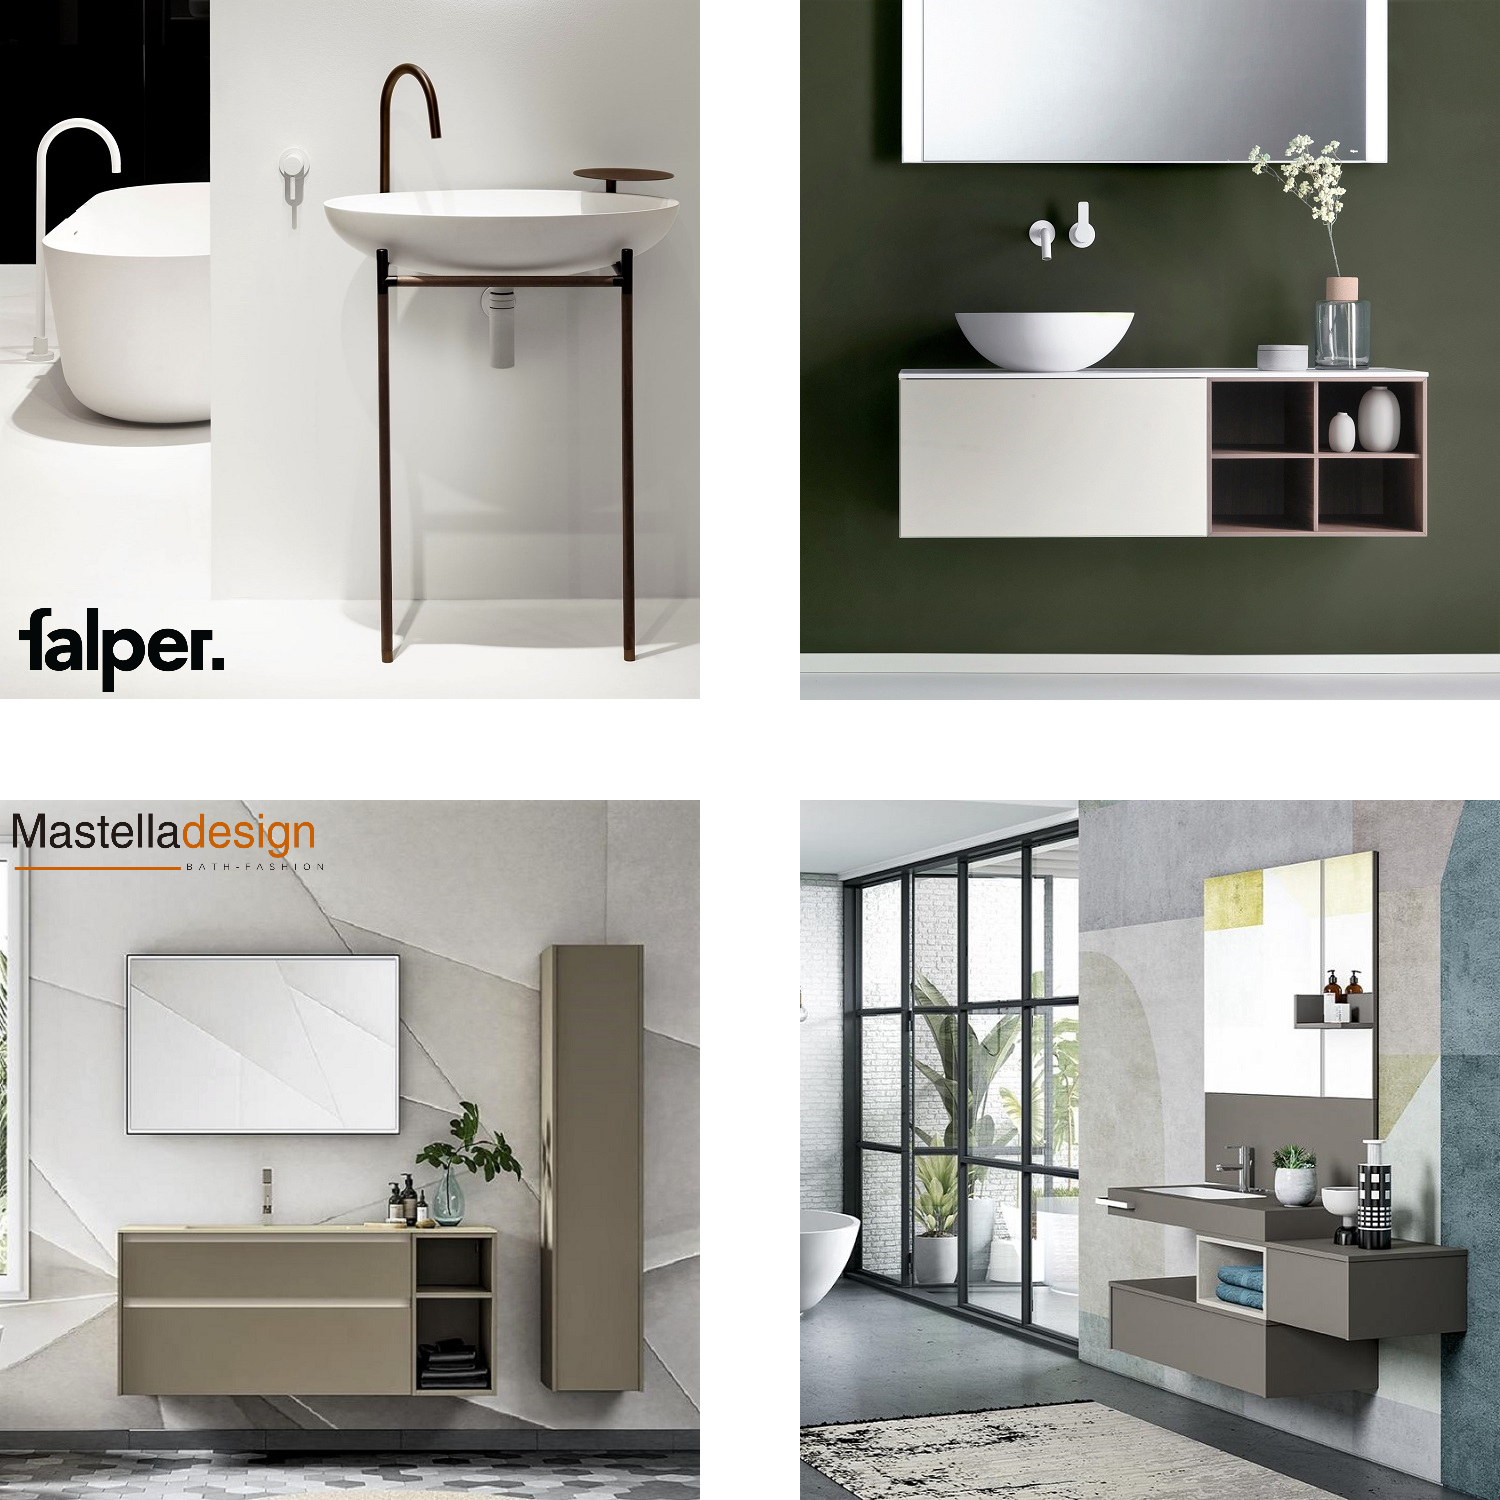 Falper + Mastella Furniture